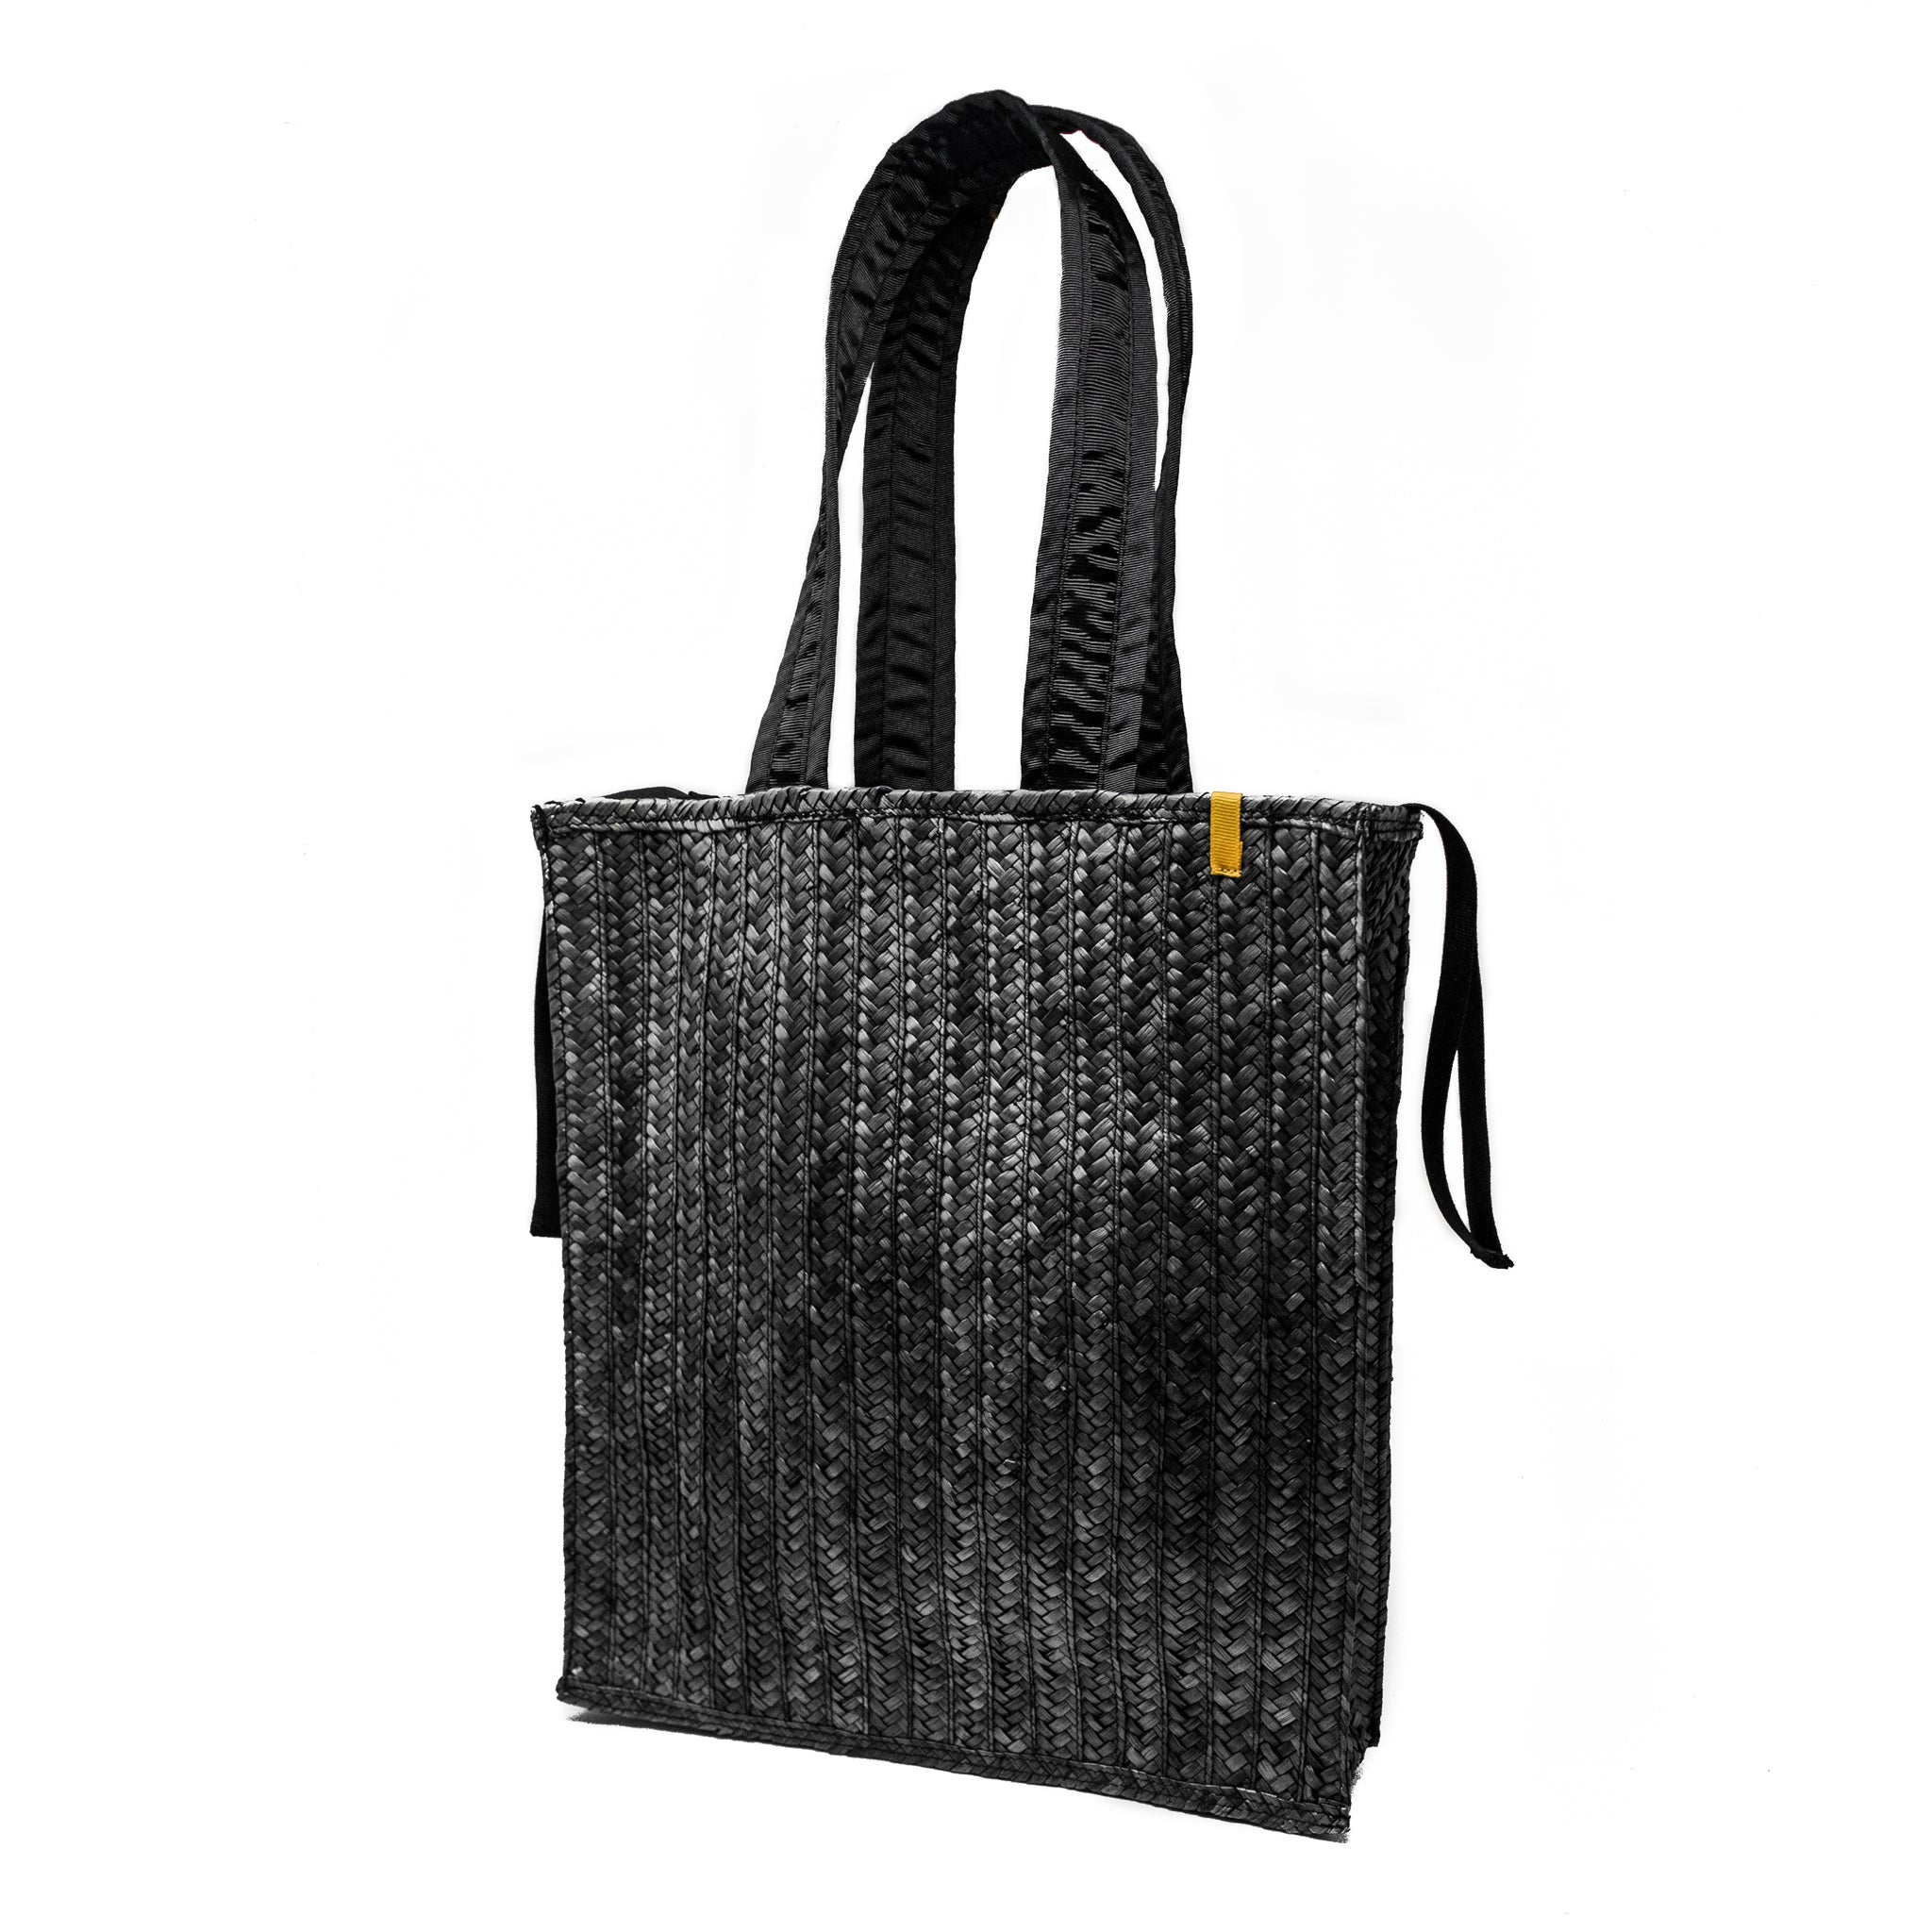 Braga Tote Bag - Black